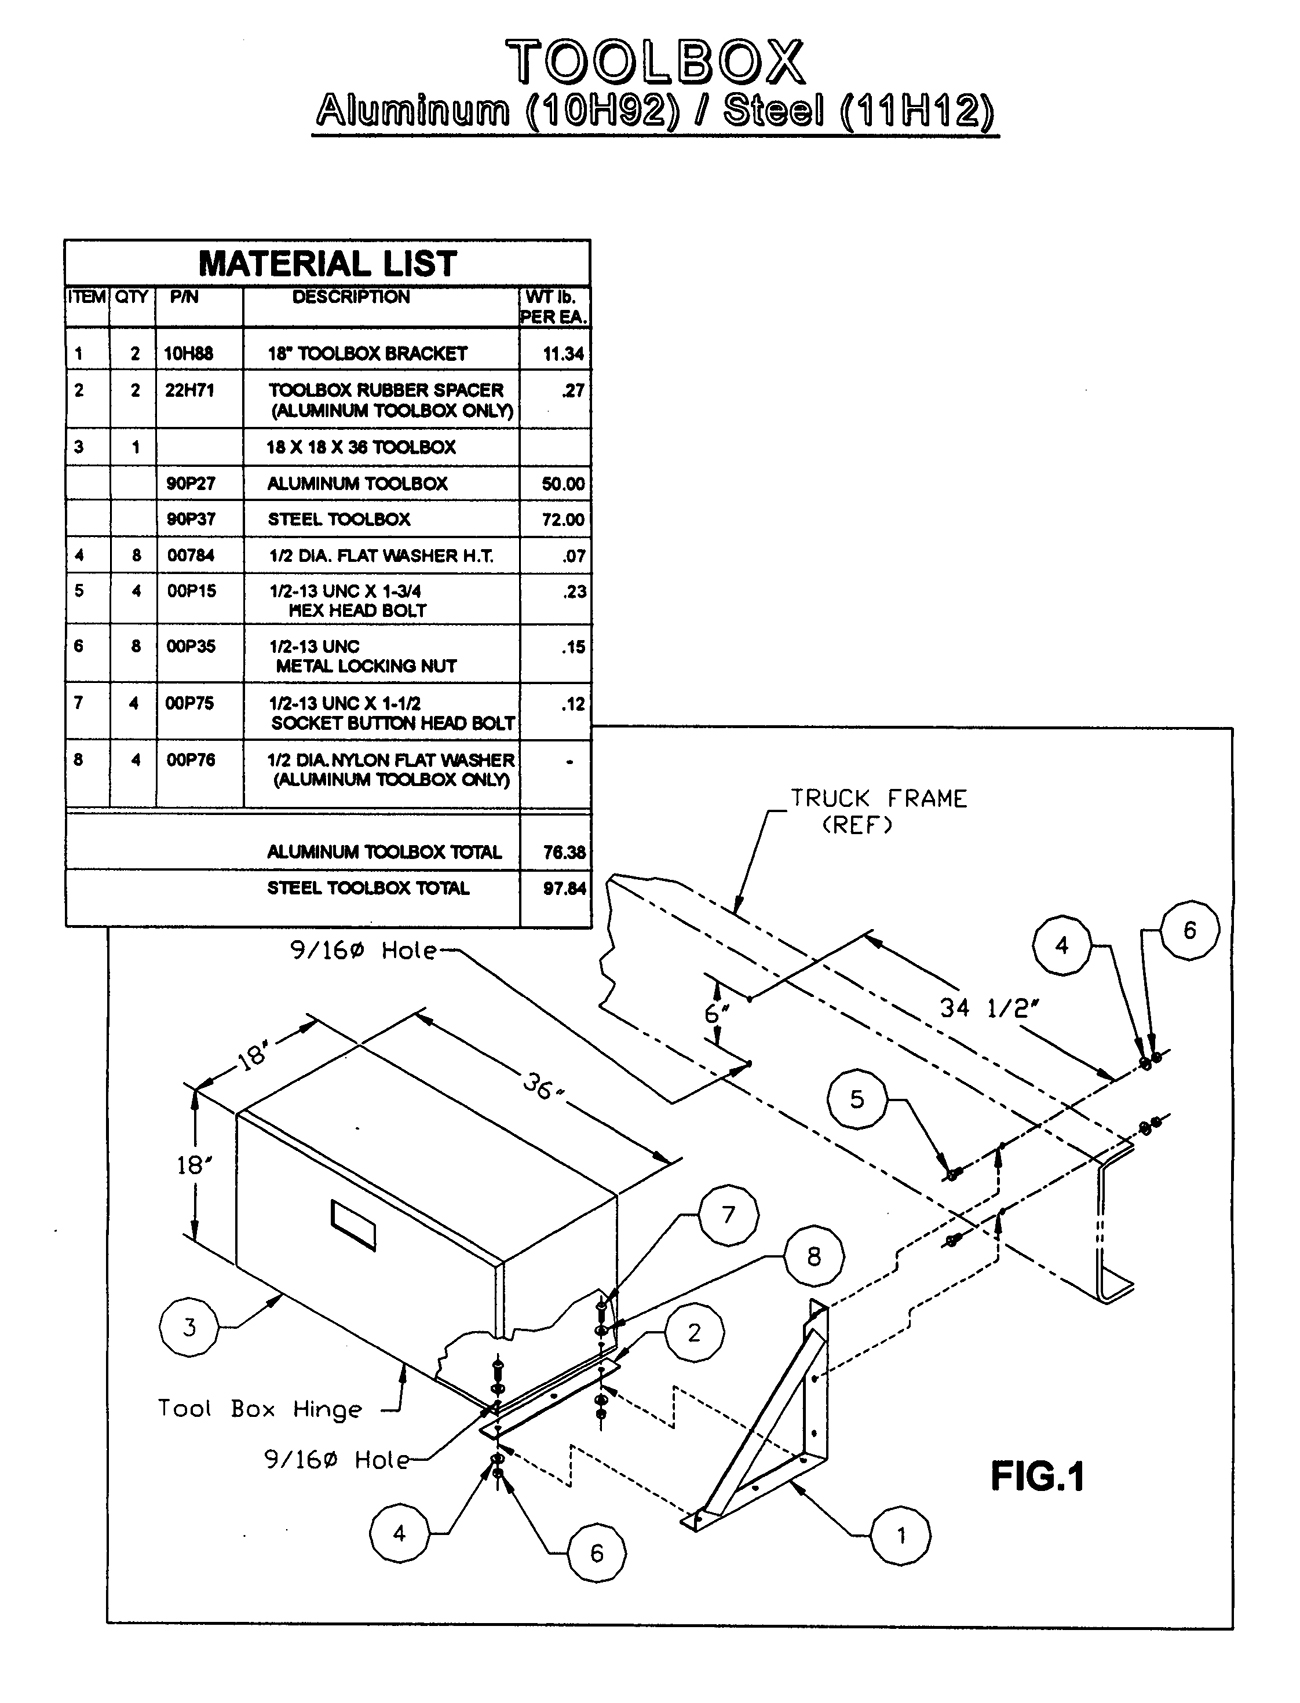 Swaploader sl 220 hooklift diagrams shop ite parts 10h9211h12 toolbox diagram pooptronica Choice Image